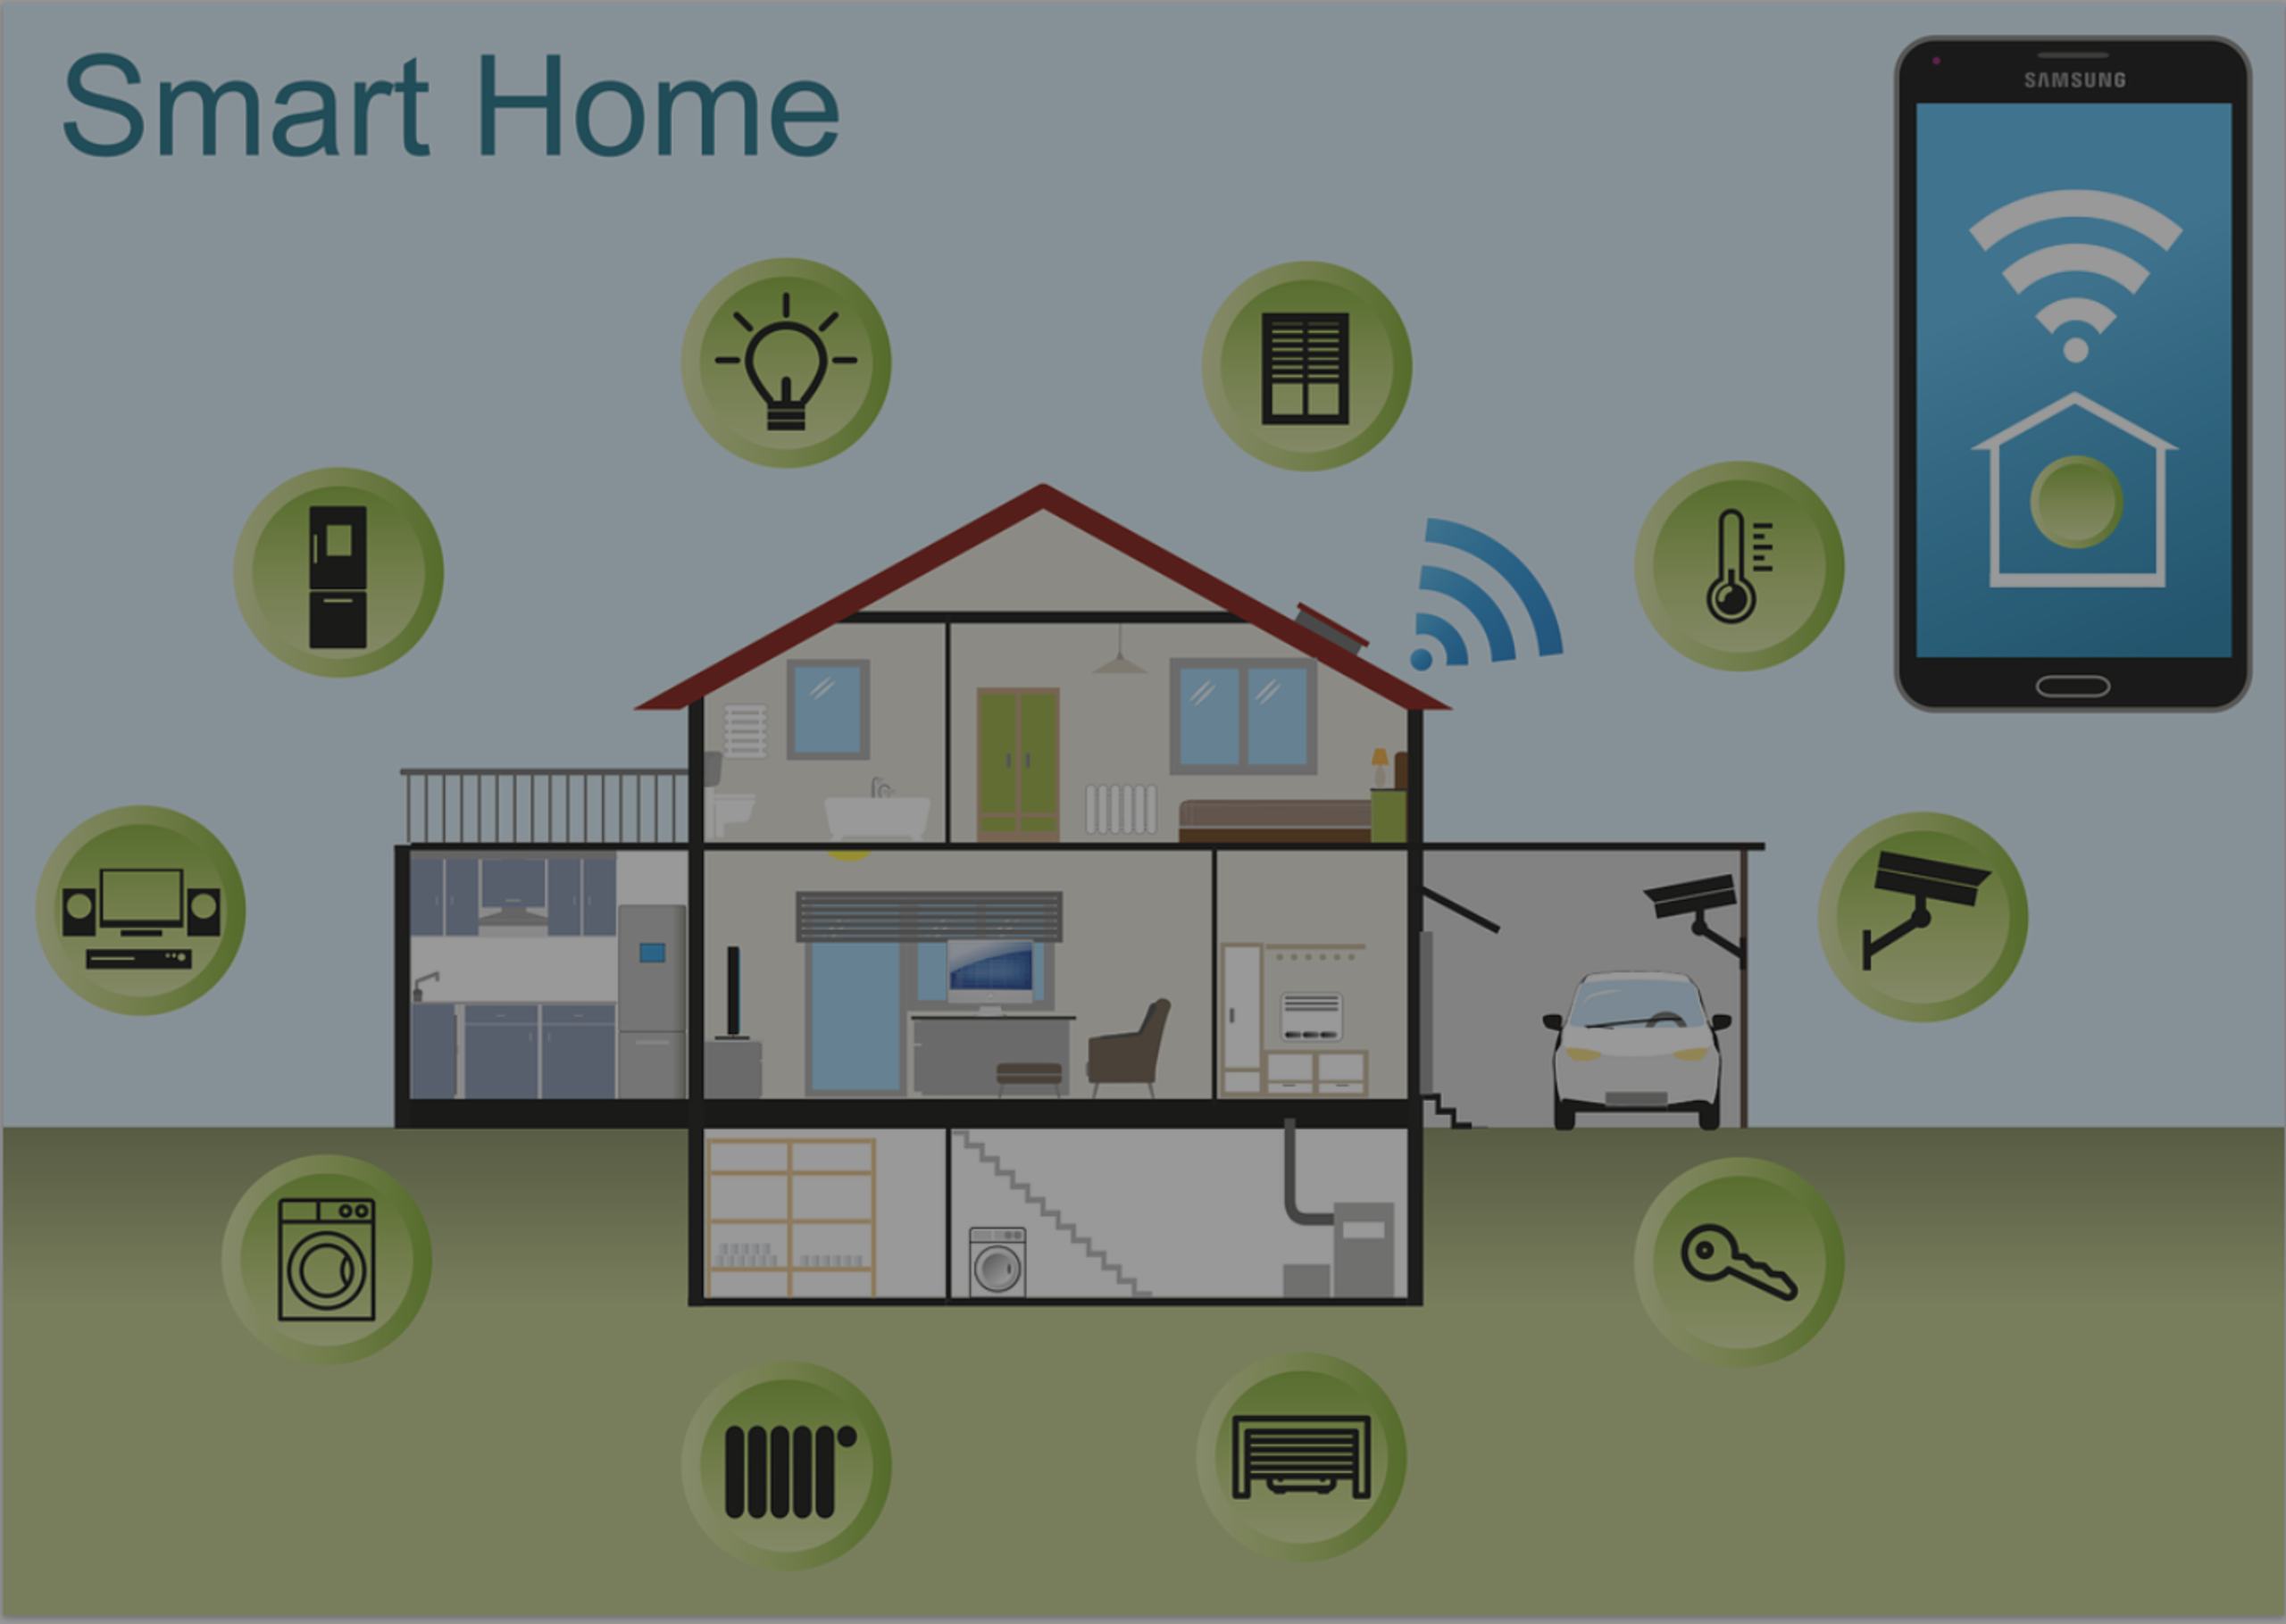 Smart Homes: Fixtures vs. Personal Property